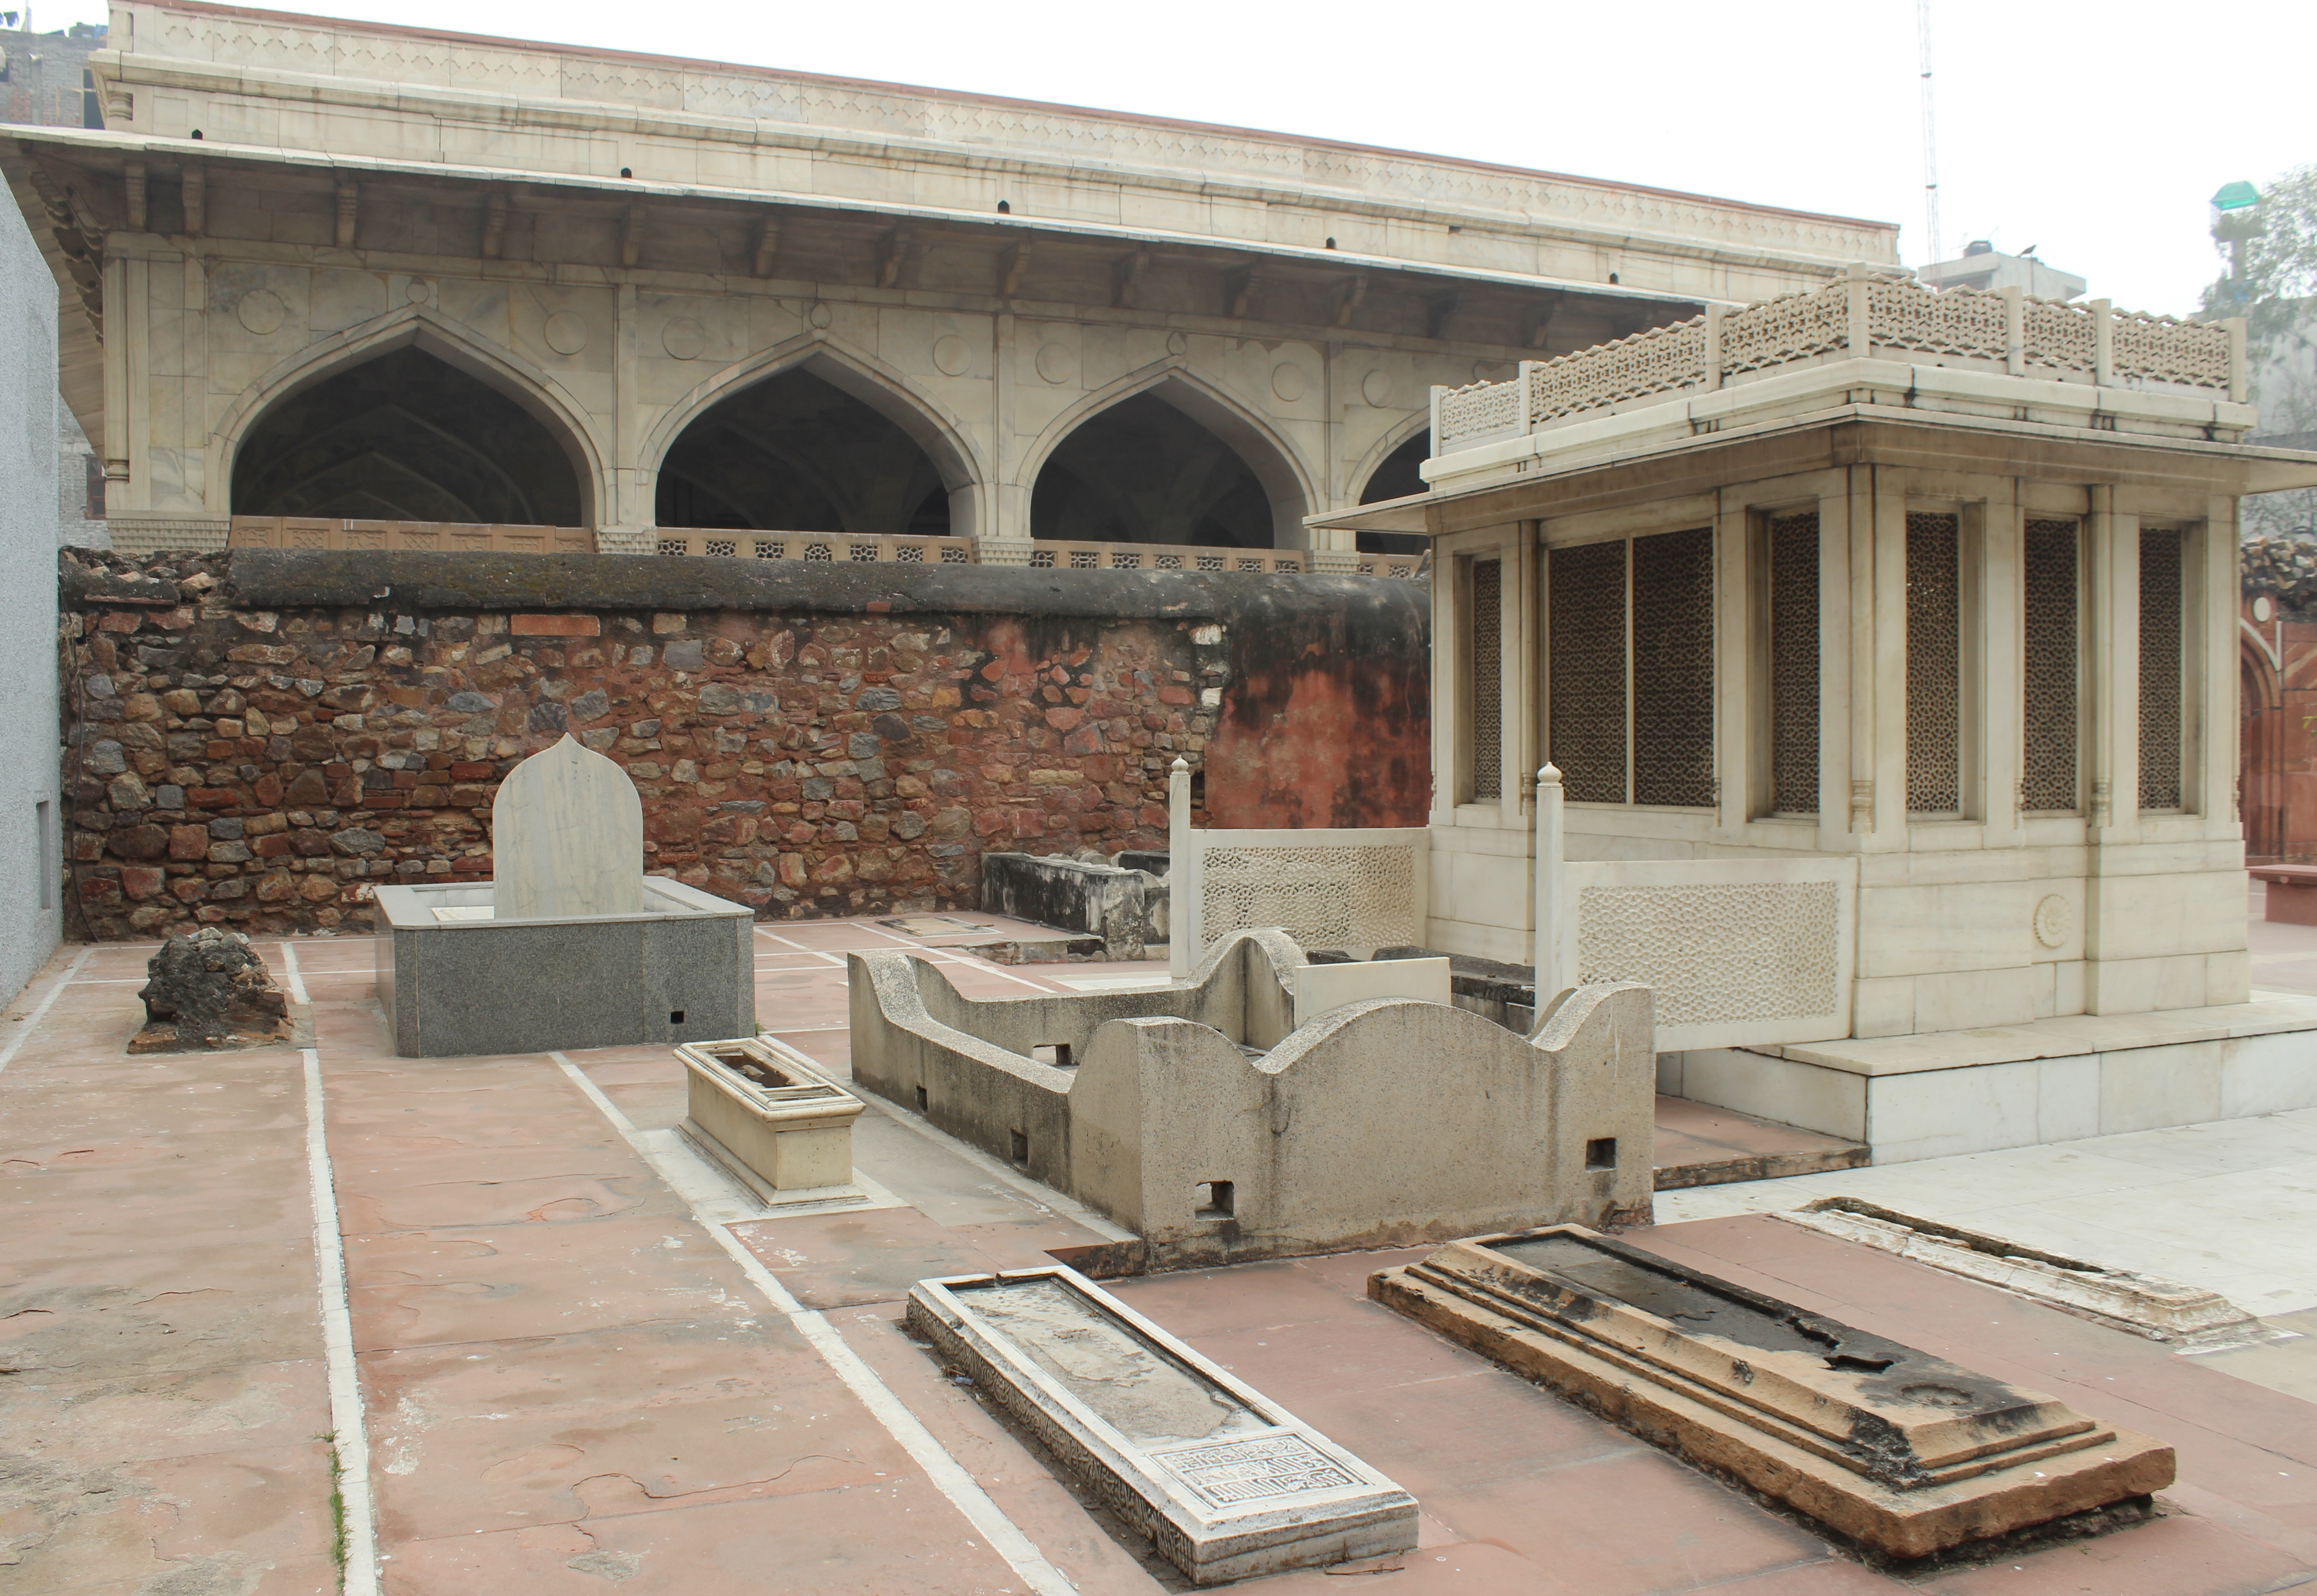 File:Mirza Ghalib and others tomb 06 jpg - Wikimedia Commons